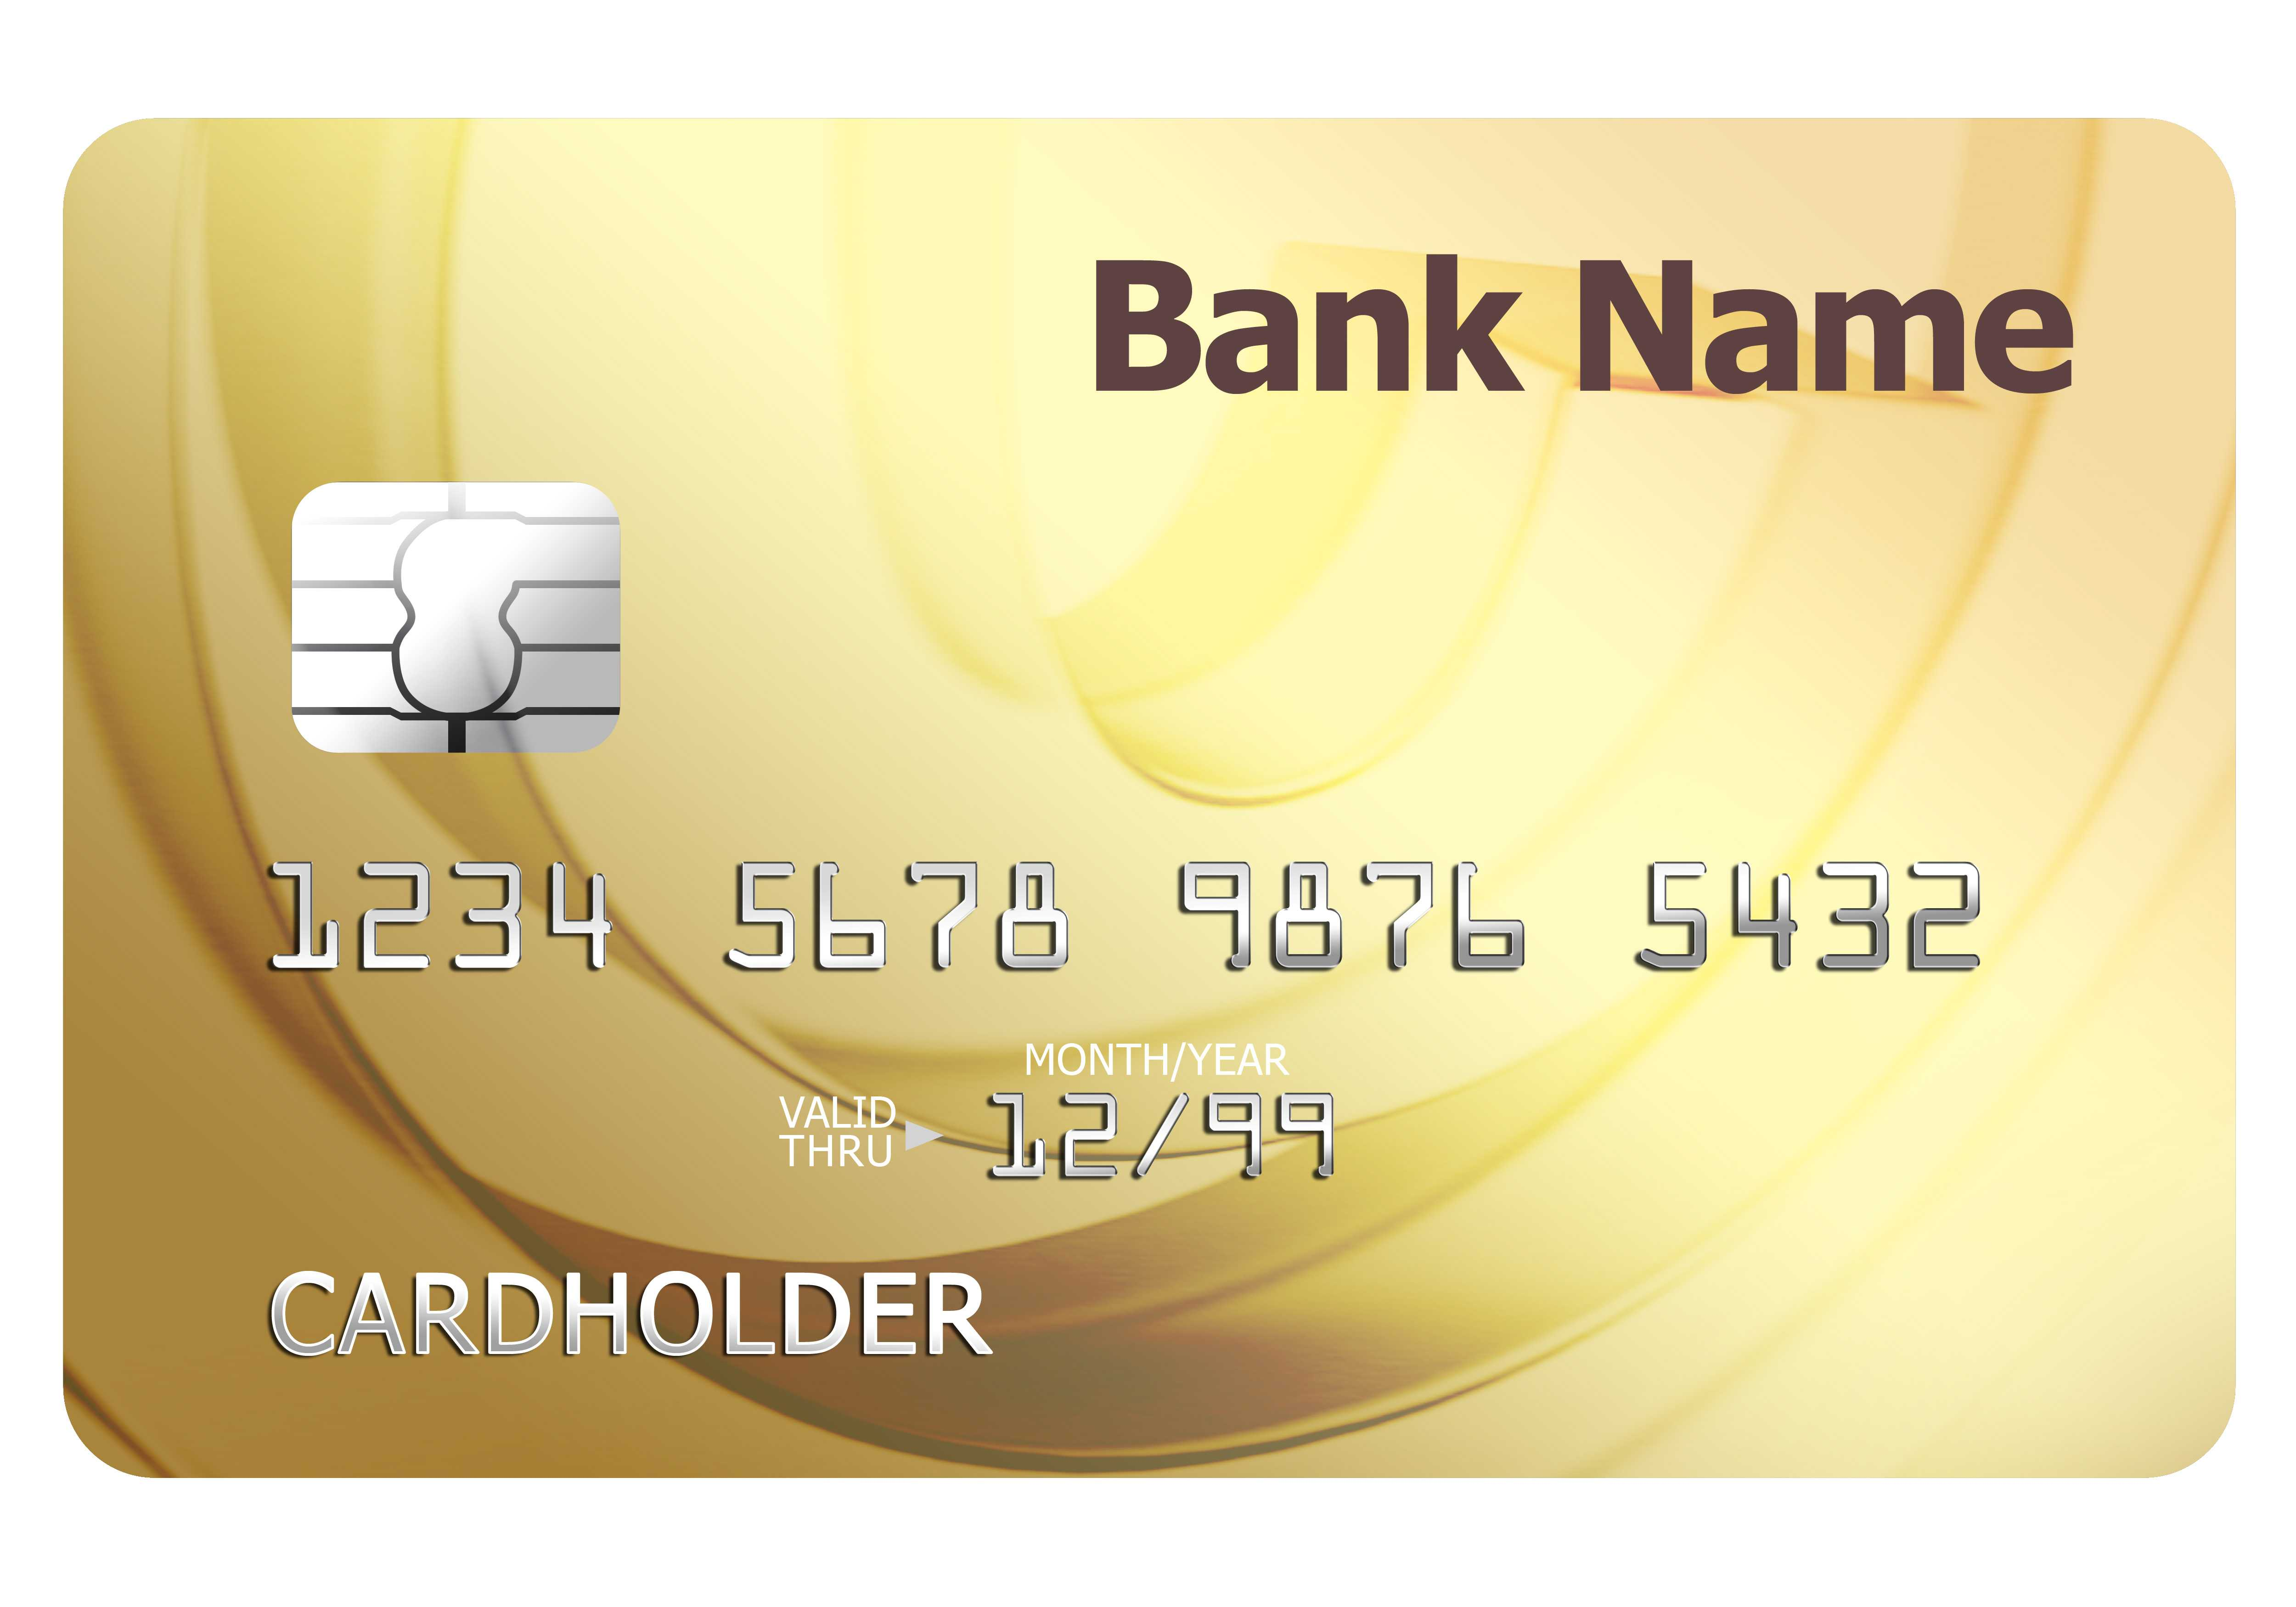 Credit Card Template | Psdgraphics Pertaining To Credit Card Size Template For Word